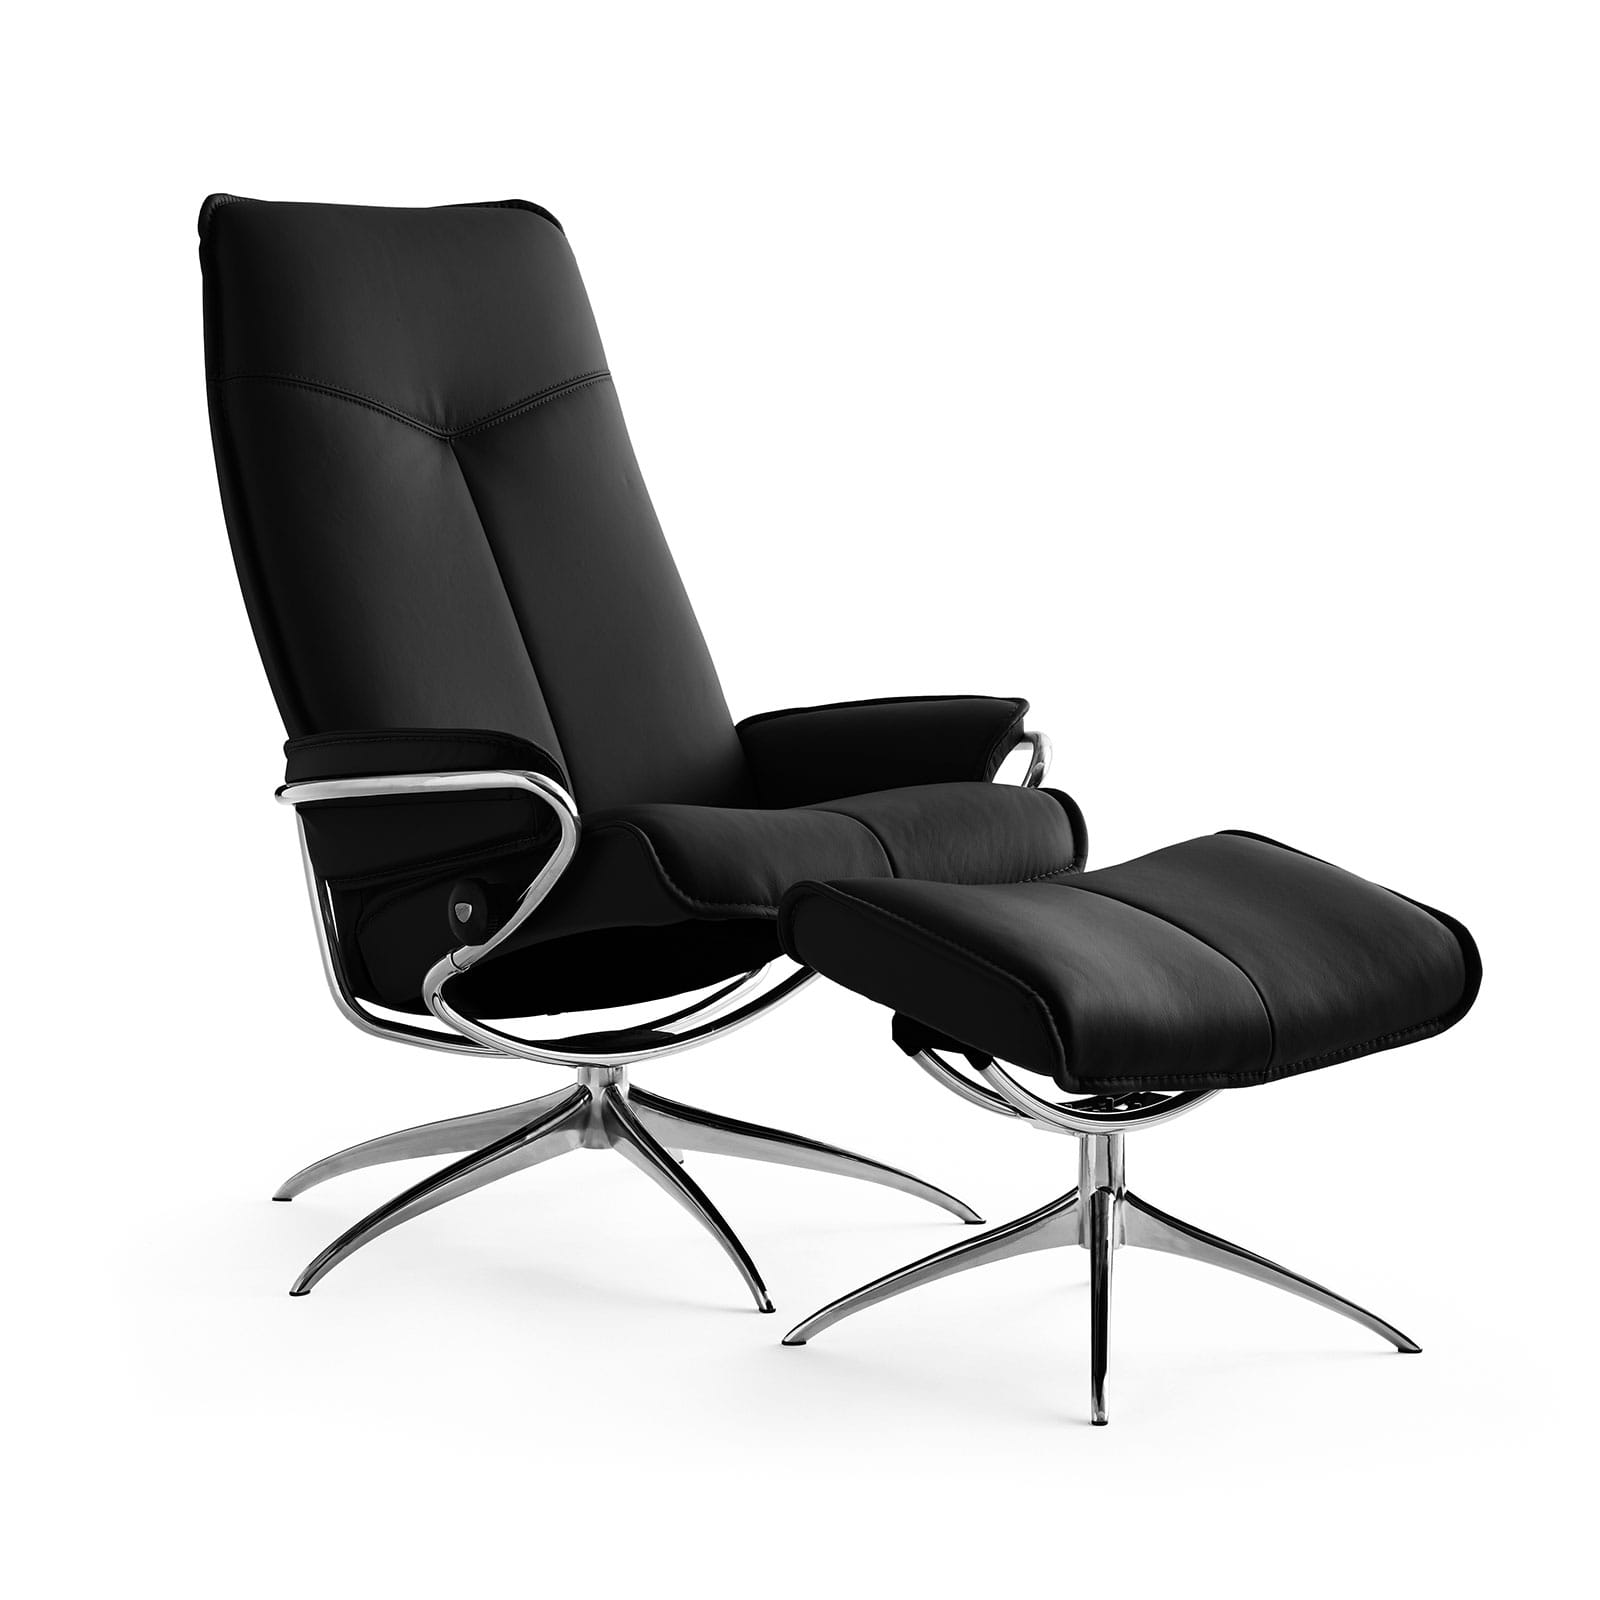 Stressless Sessel City High Back Stressless Sessel City High Back Mit Hocker Black Chrom